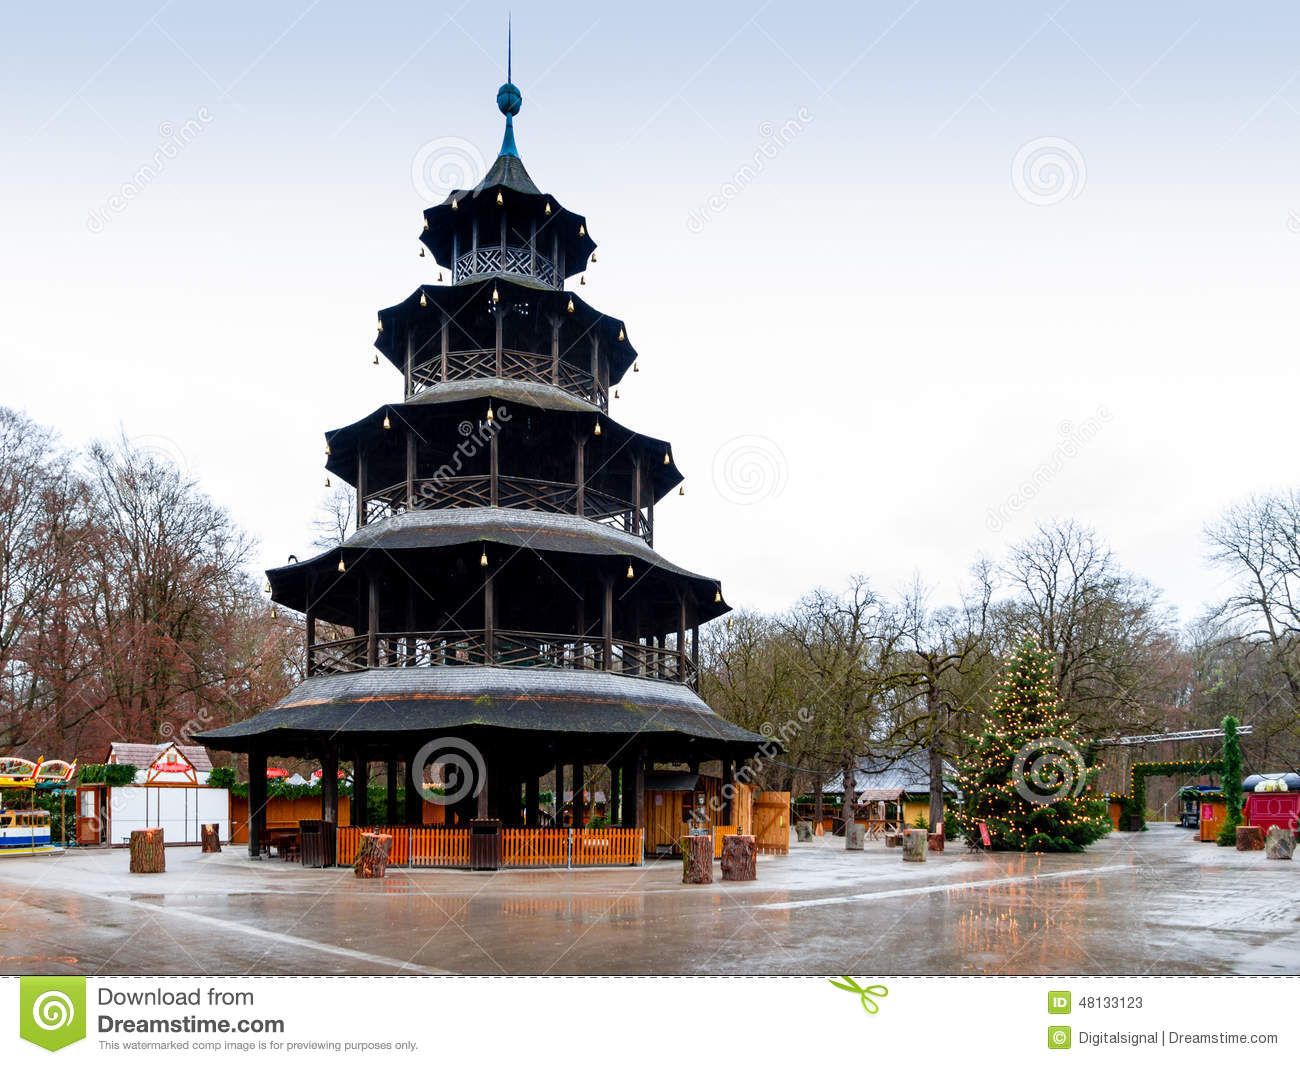 the chinese tower in munich germany stock image image of feast china 48133123. Black Bedroom Furniture Sets. Home Design Ideas